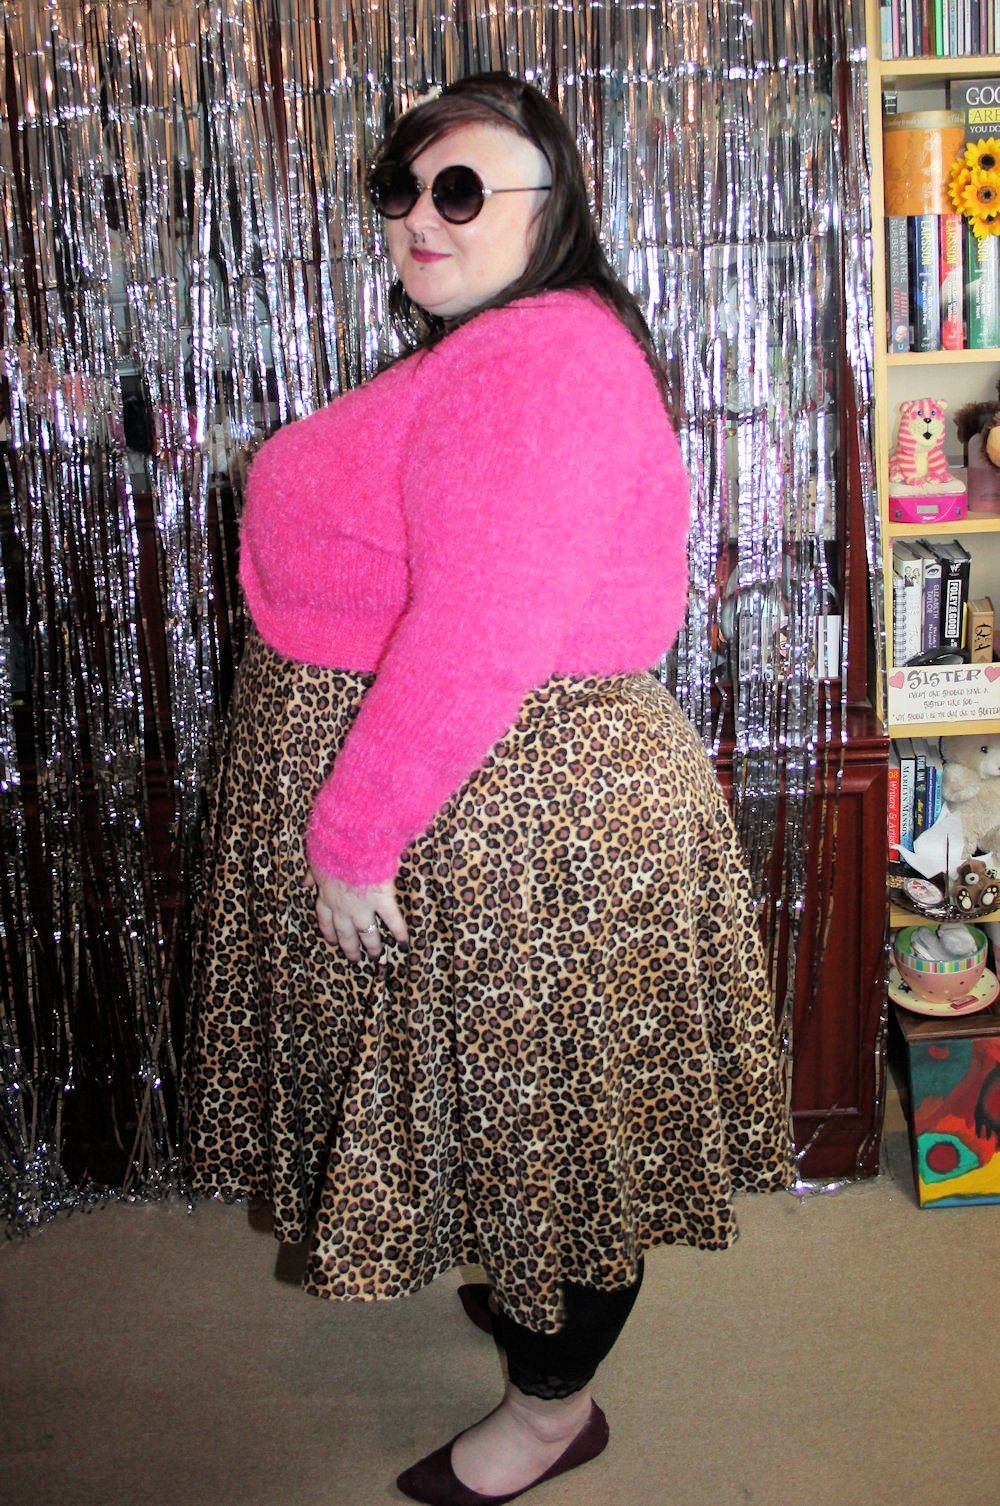 LADY V LONDON LADY VOLUPTUOUS LEOPARD PRINT PLUS SIZE RETRO FIT AND FLARE DRESS SIZE 28-28